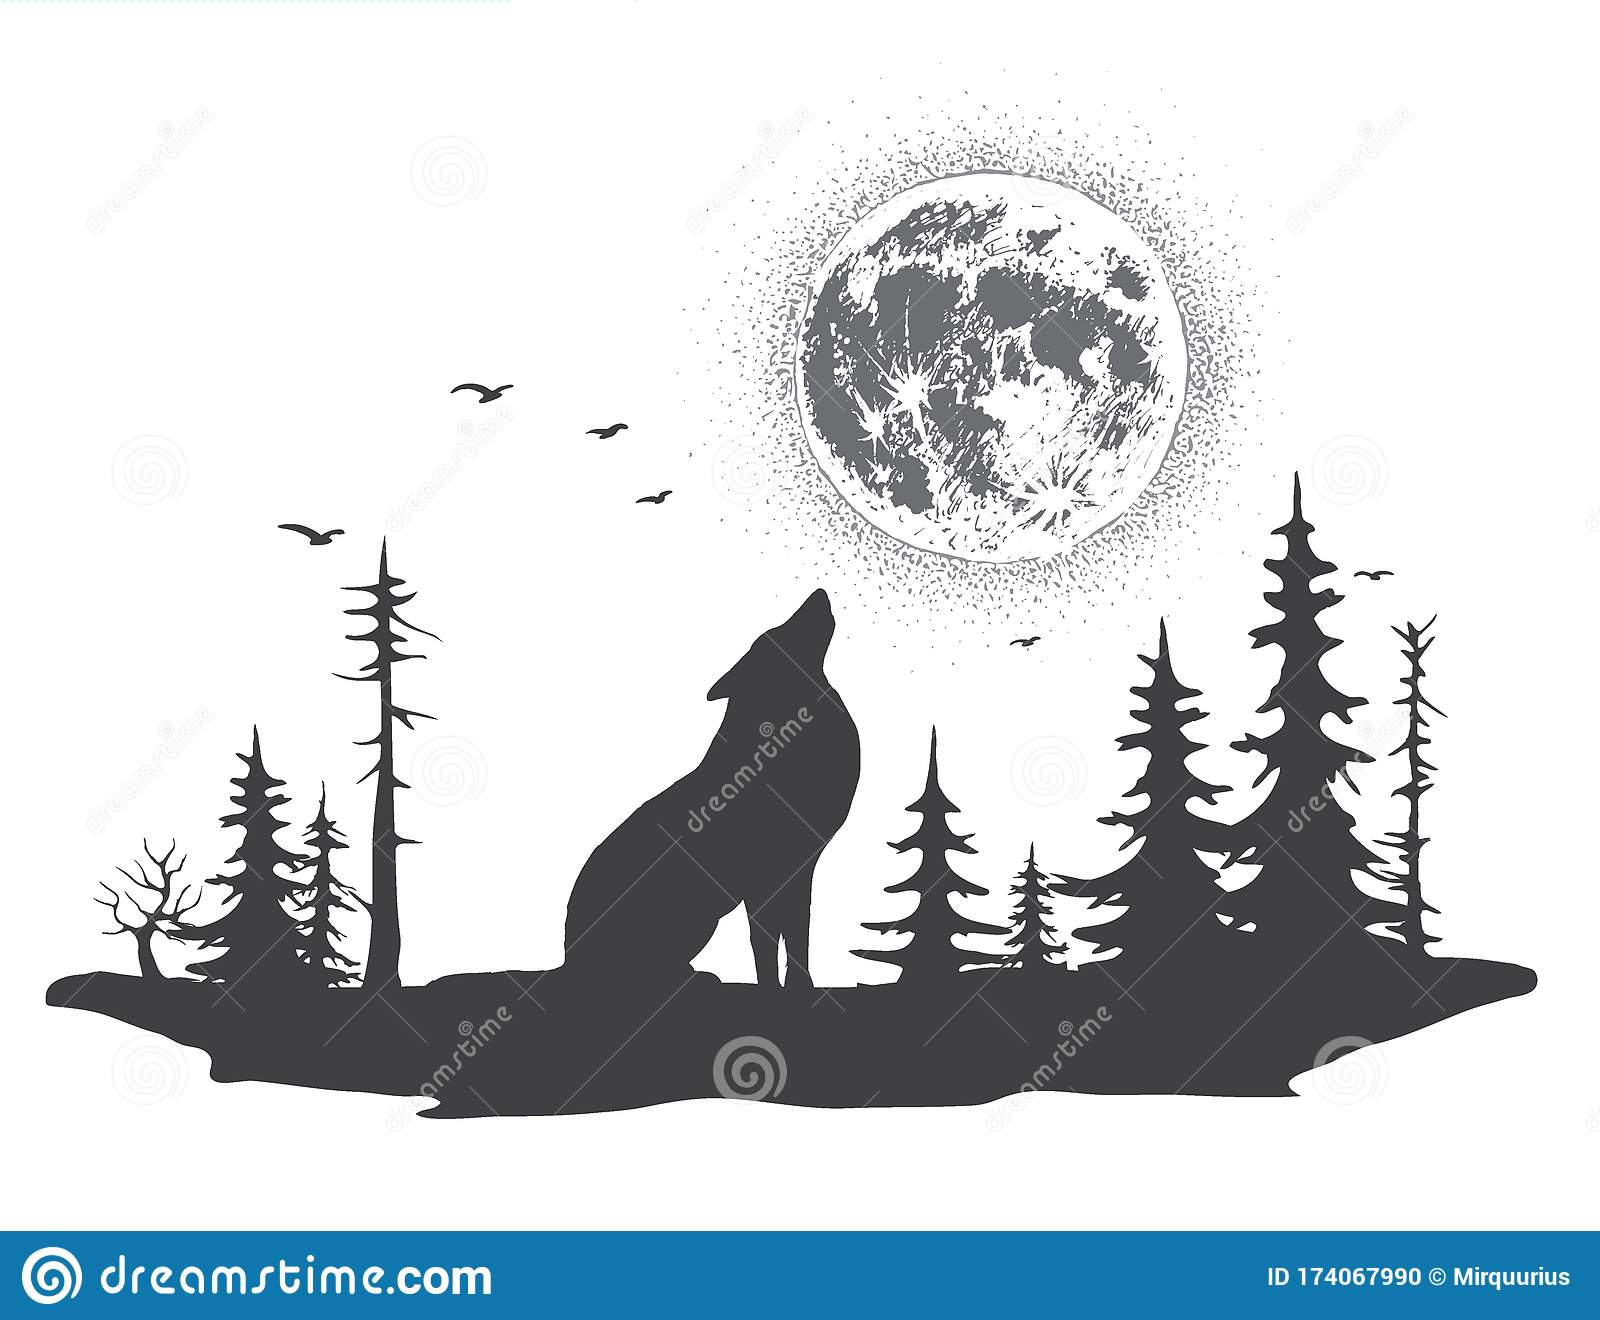 Lonely Wolf Howling At The Moon Stock Vector Illustration Of Spruce Drawing 174067990